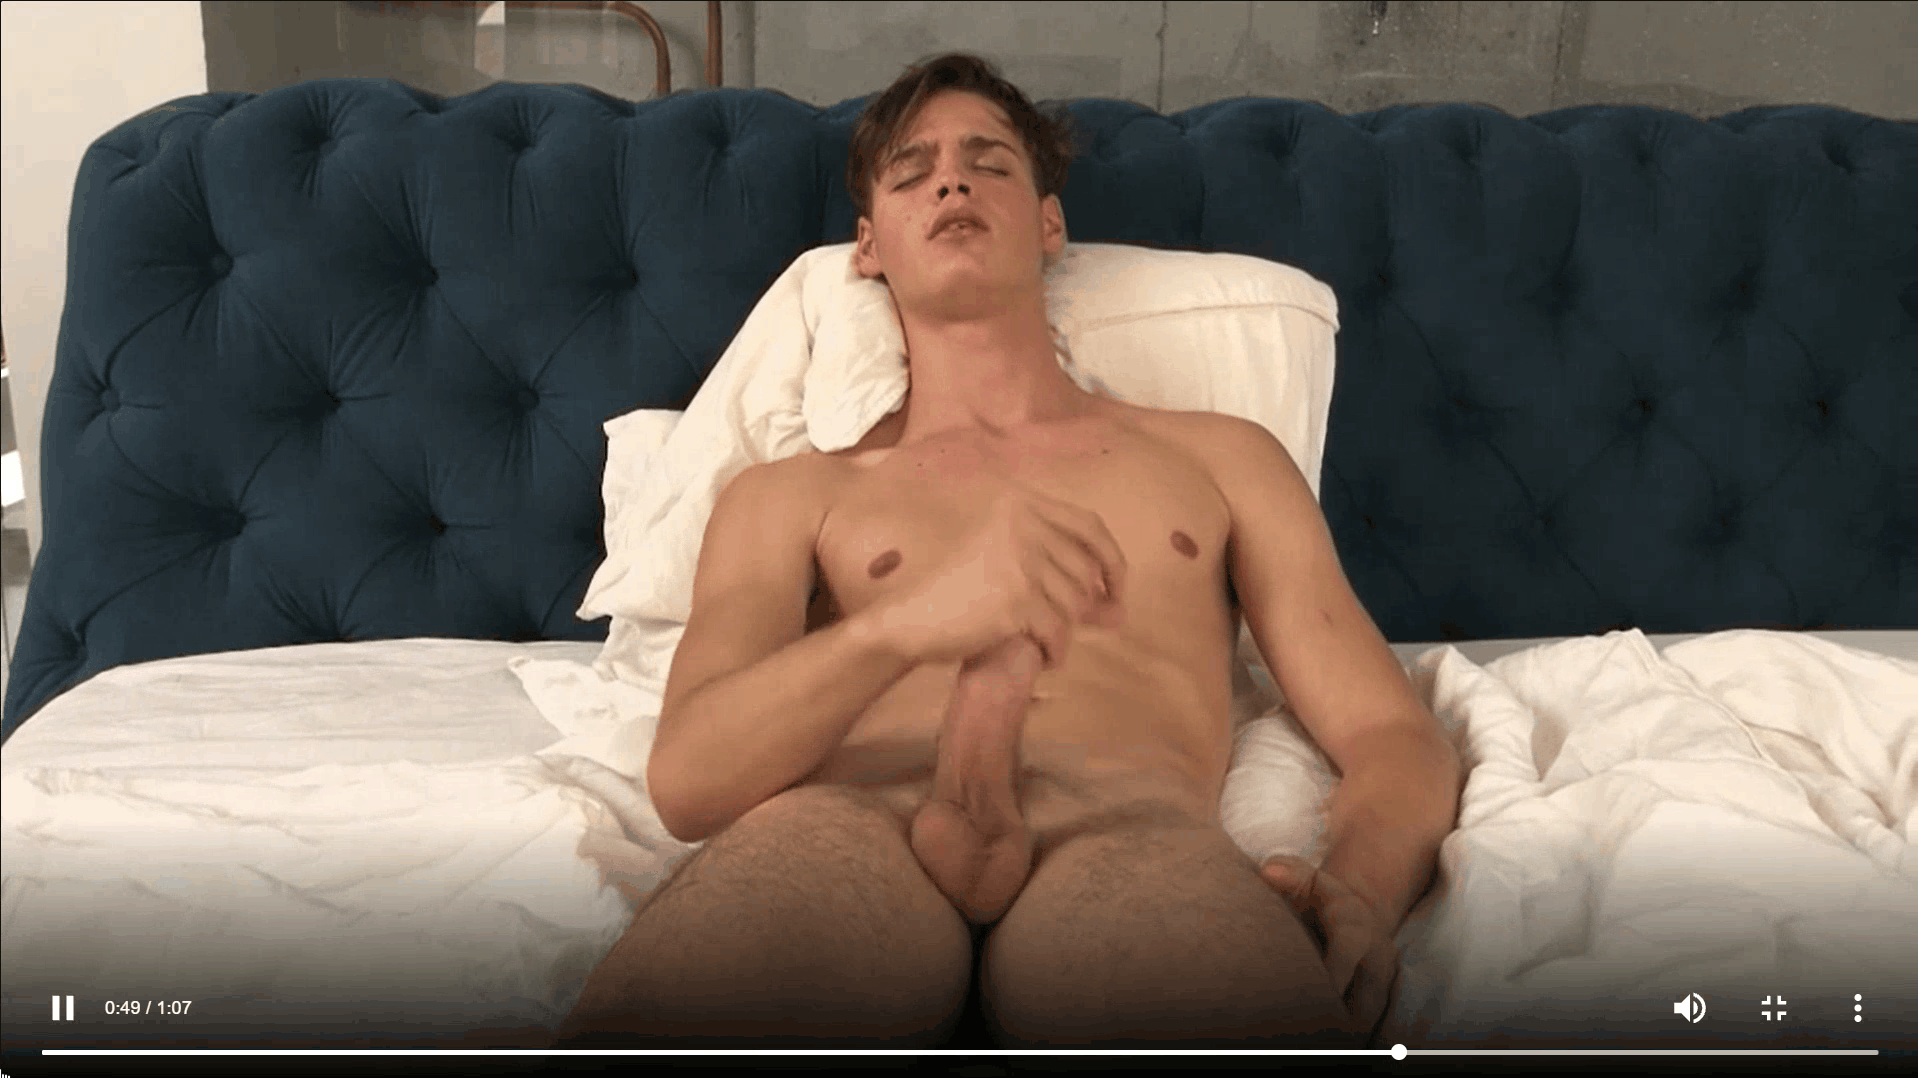 Sexy dark haired young twink Pascal Mauri steps out of the shower stroking big thick uncut dick 13 gay porn pics - Sexy dark haired young twink Pascal Mauri steps out of the shower stroking his big thick uncut dick